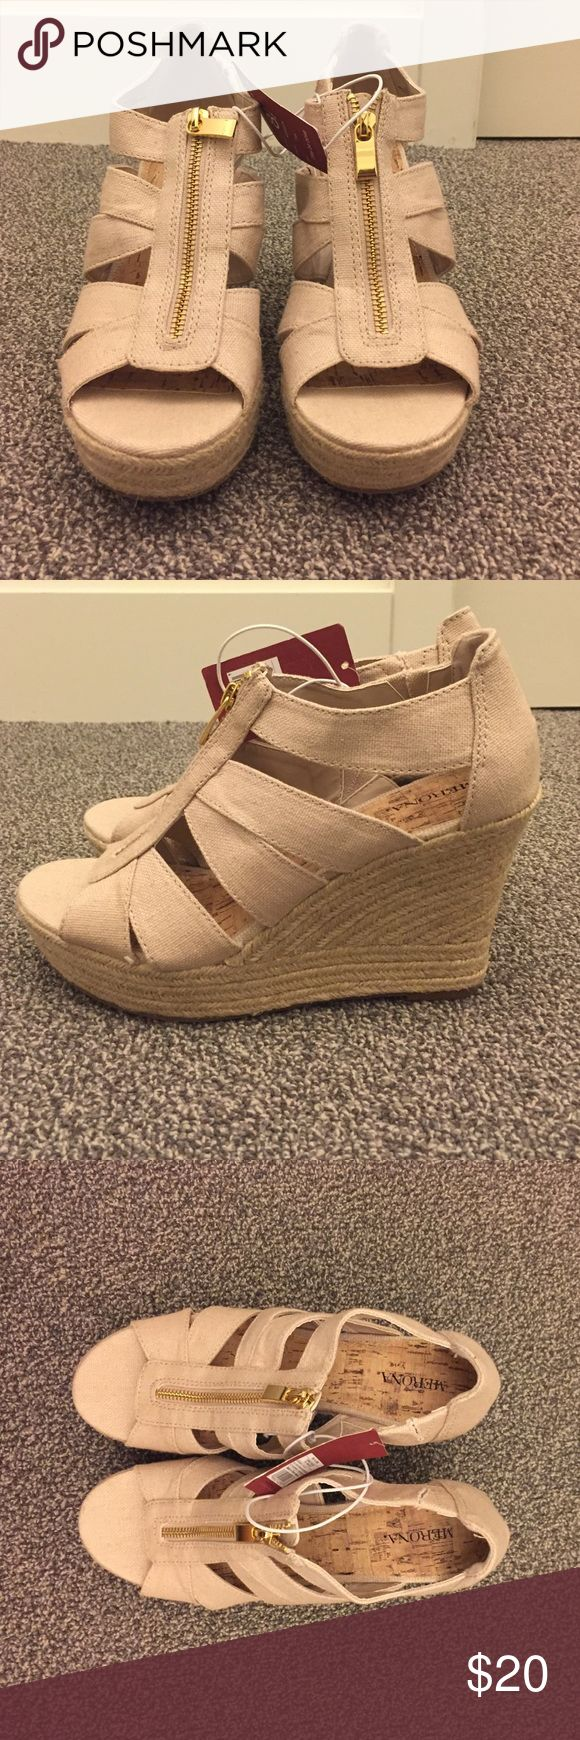 Women's size 8.5 Merona espadrille wedges Women's size 8.5 Merona nude espadrille zipper Wedges. Never worn. New with tags. Merona Shoes Espadrilles